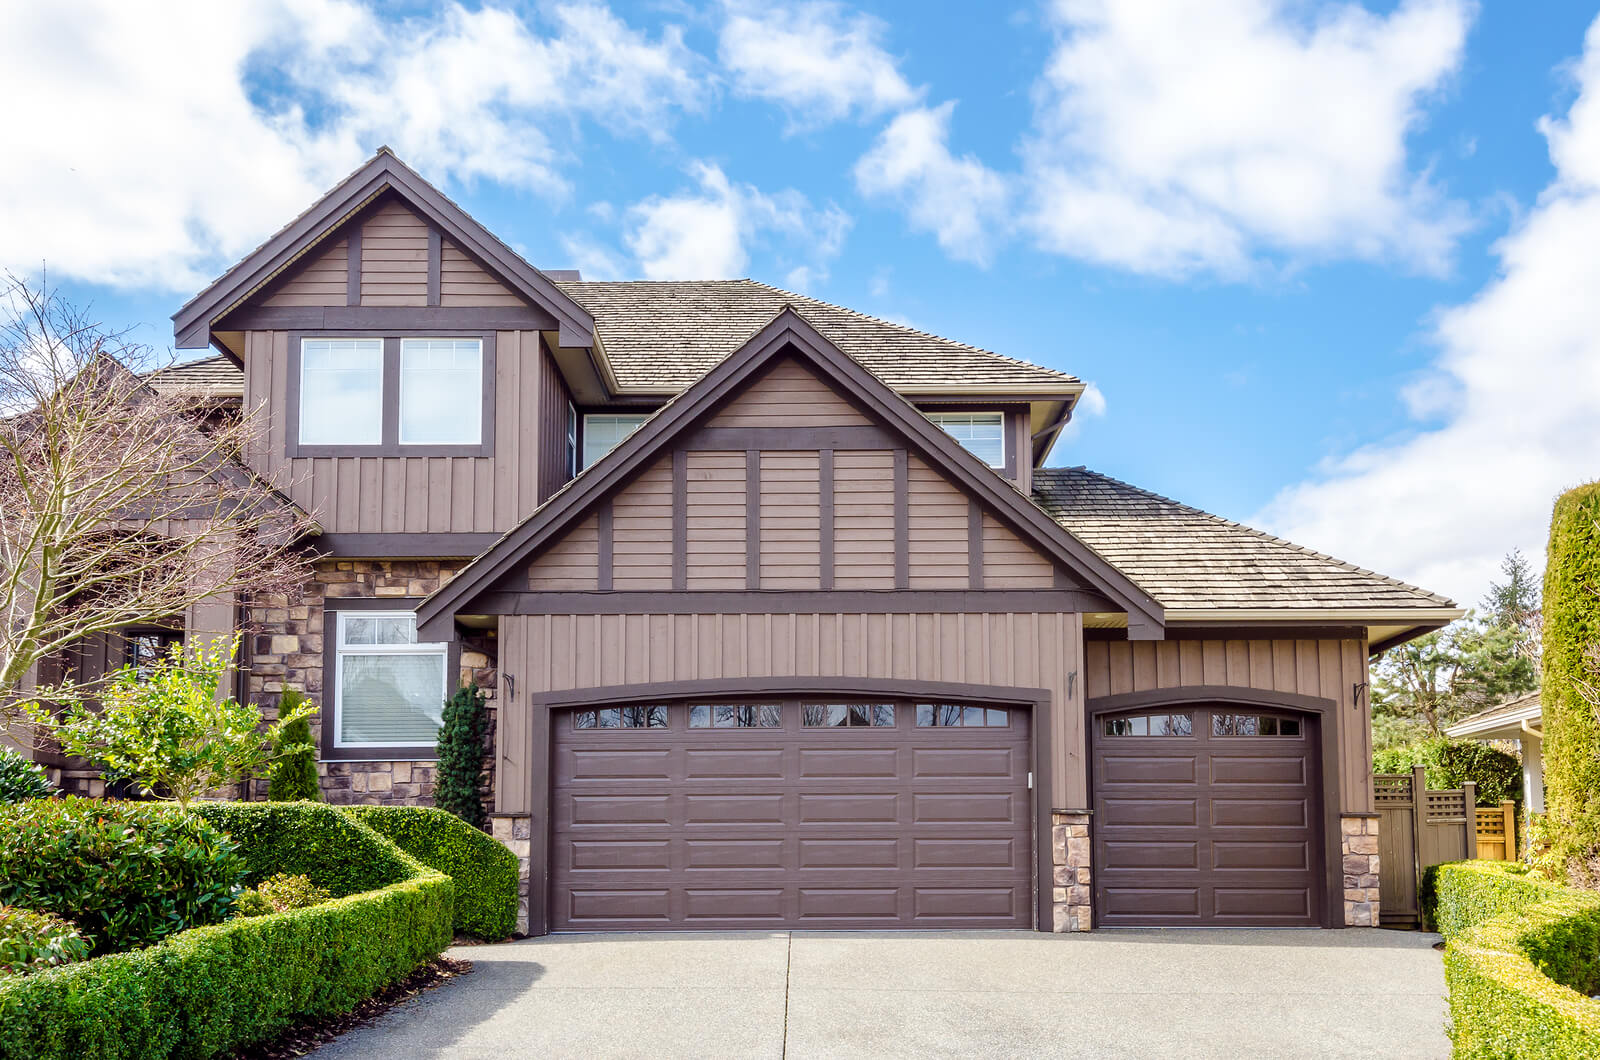 Waterloo garage doors repair and installation services on looking for a new garage door in waterloo solutioingenieria Image collections